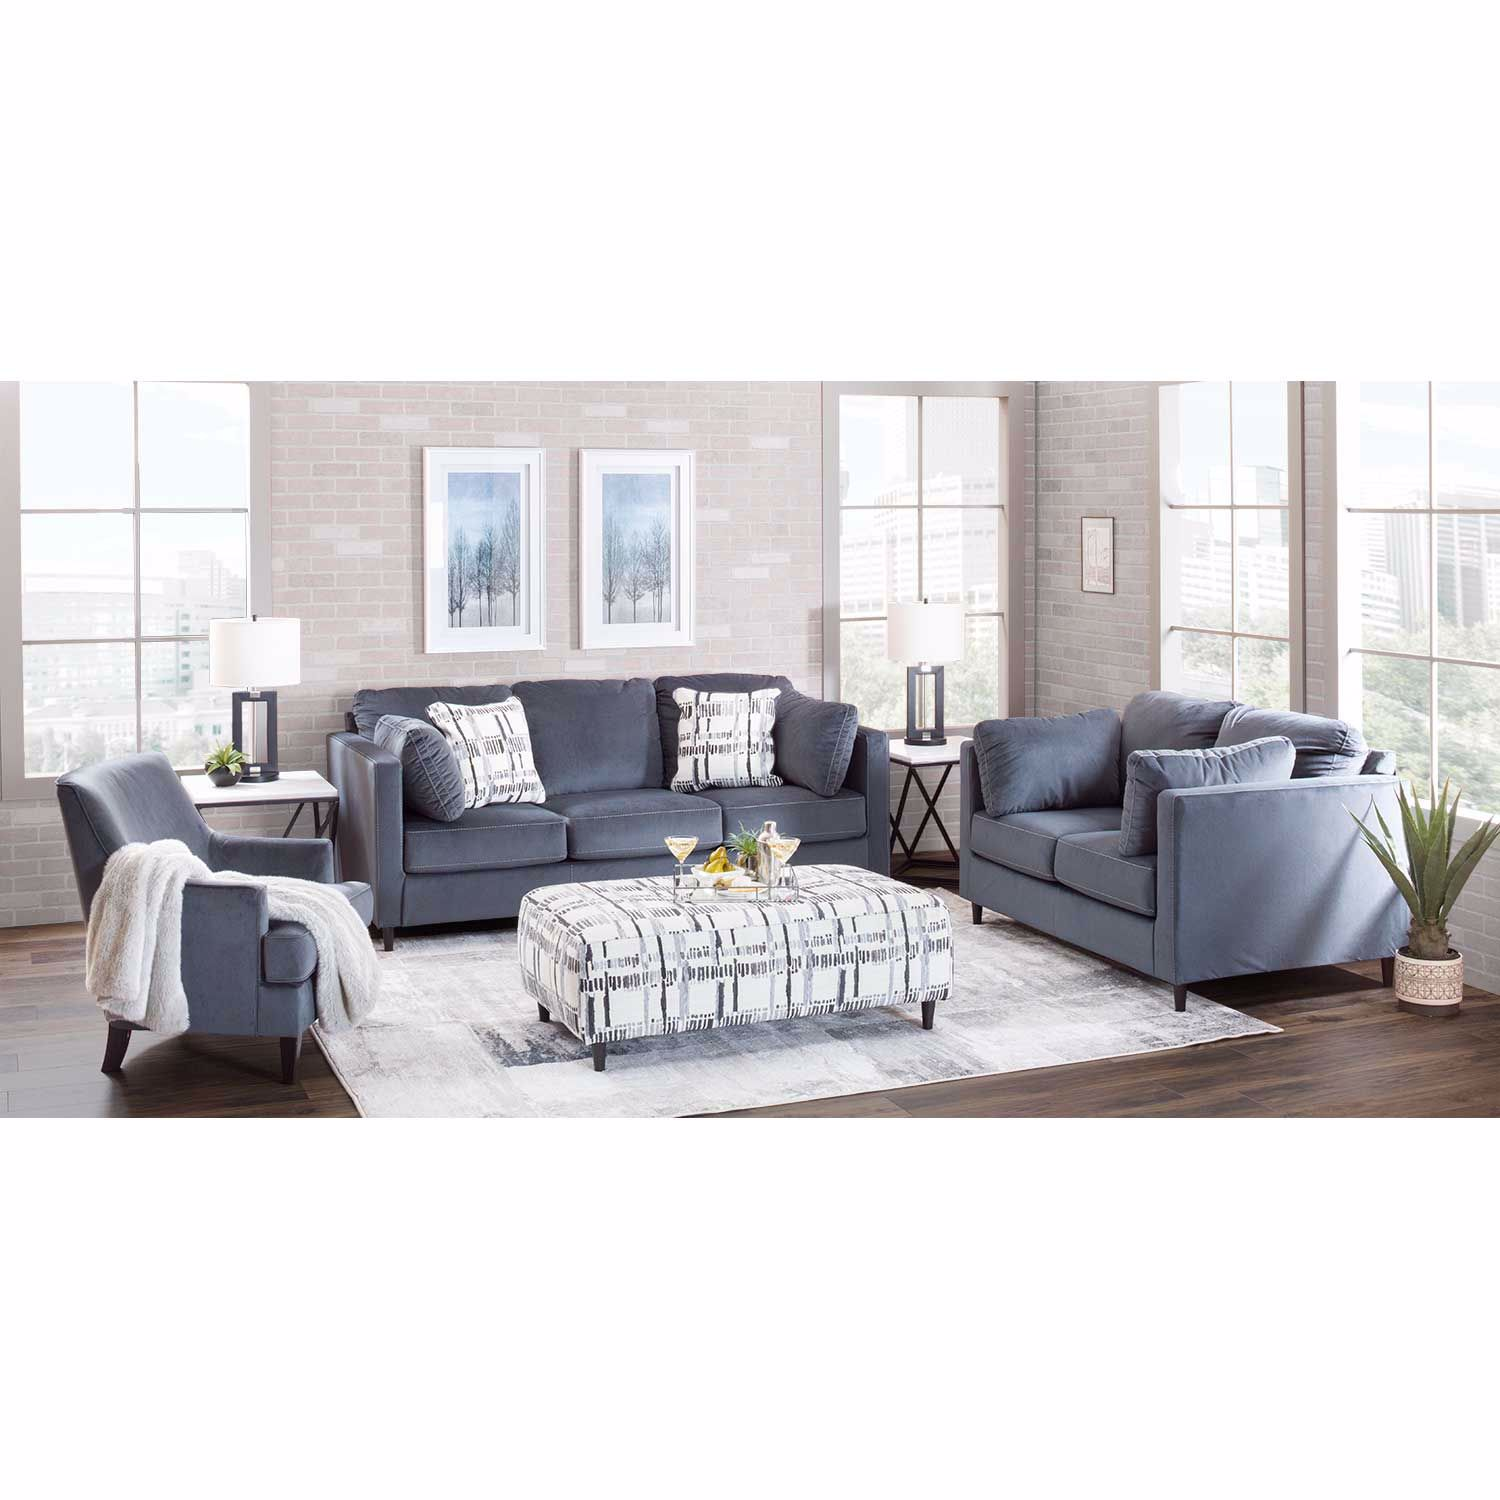 Picture of Kennewick Paint Strokes Accent Chair